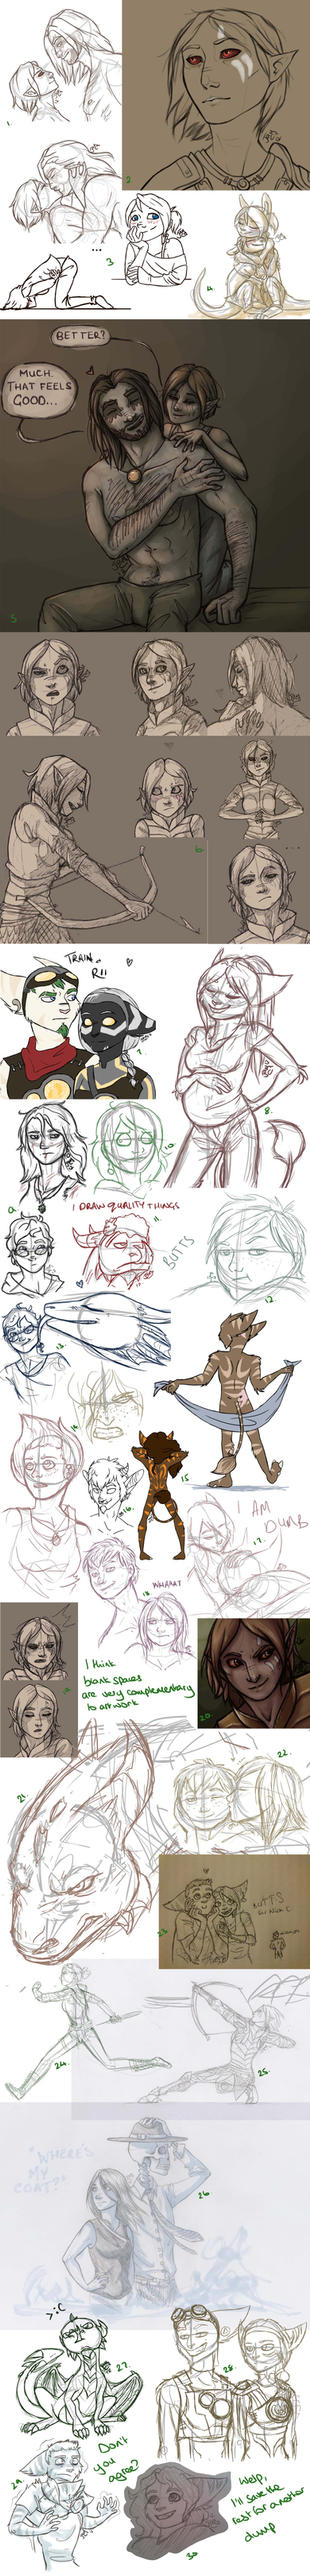 Longass Sketchdump of eVERYTHING by jessanight